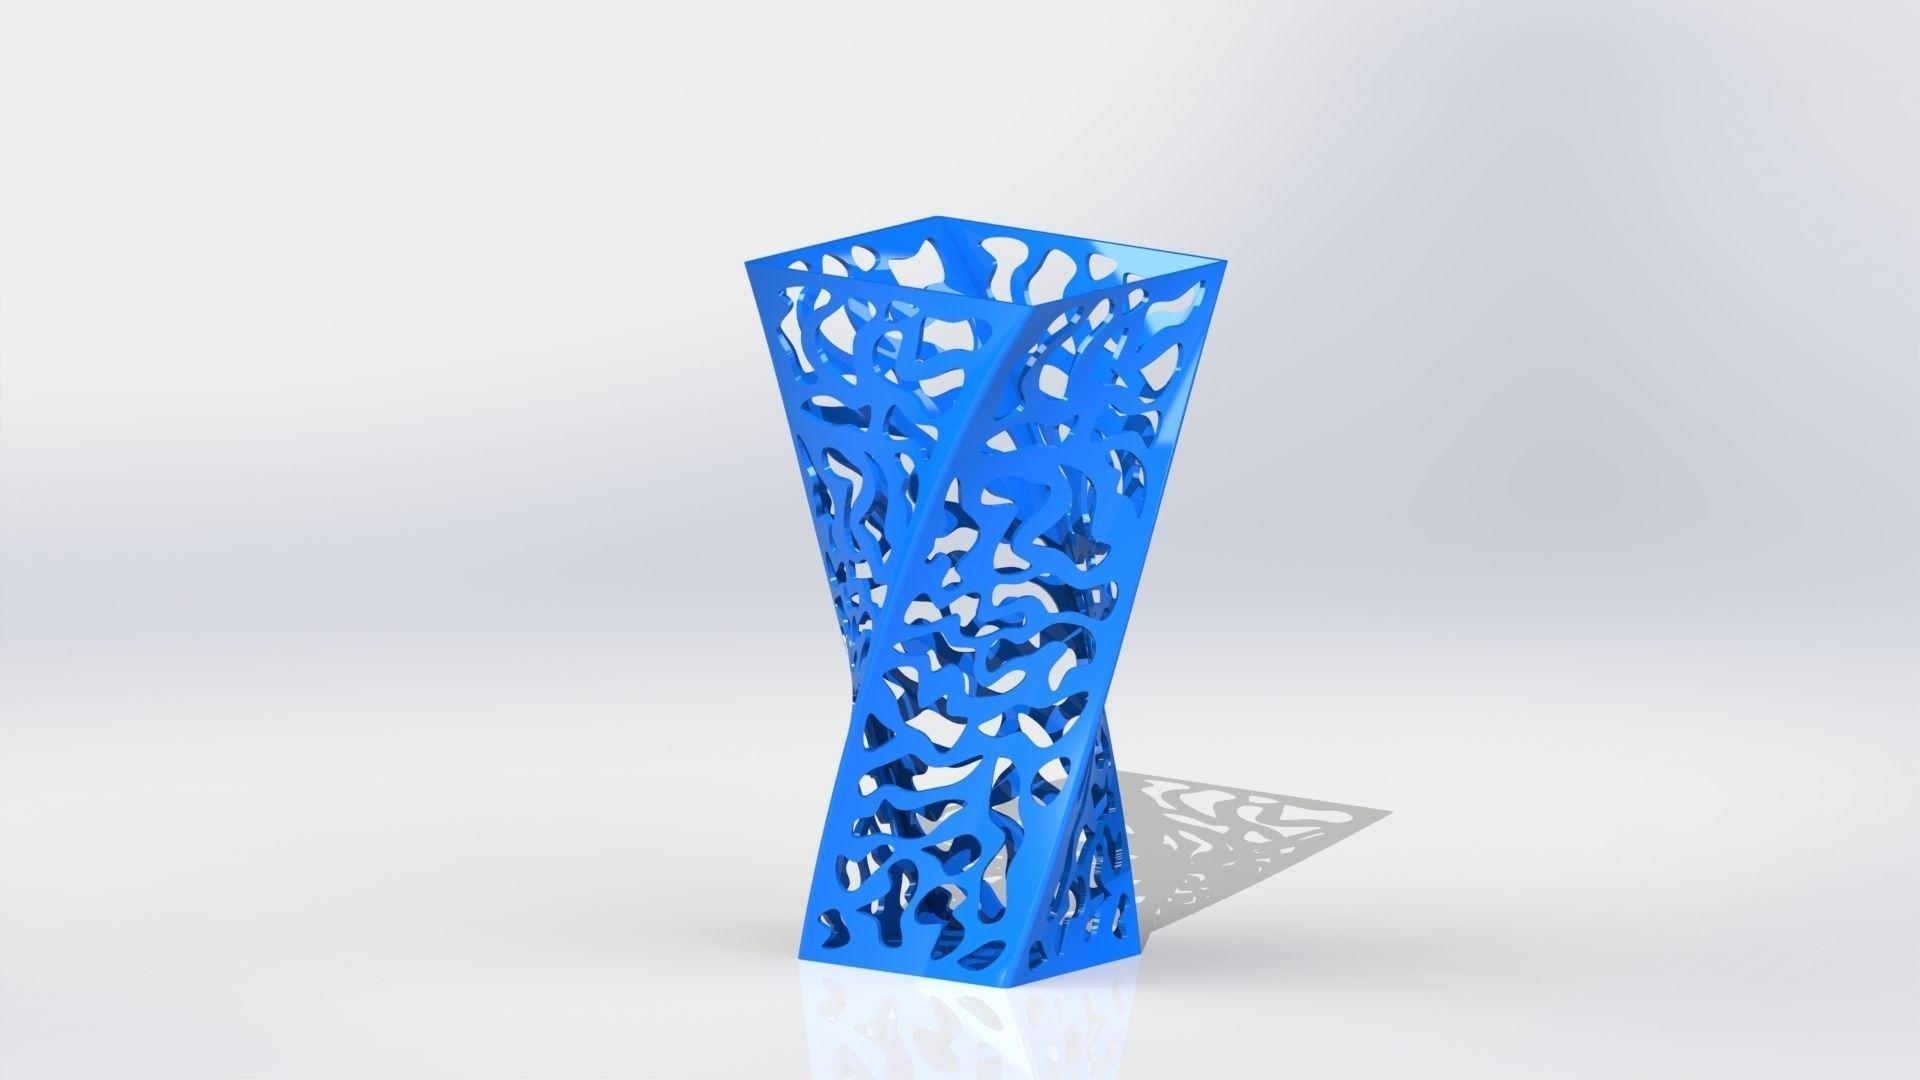 on myminifactory gallery imgur com object here free stl album monochromatic printed the download for devinmontesaug vase s by